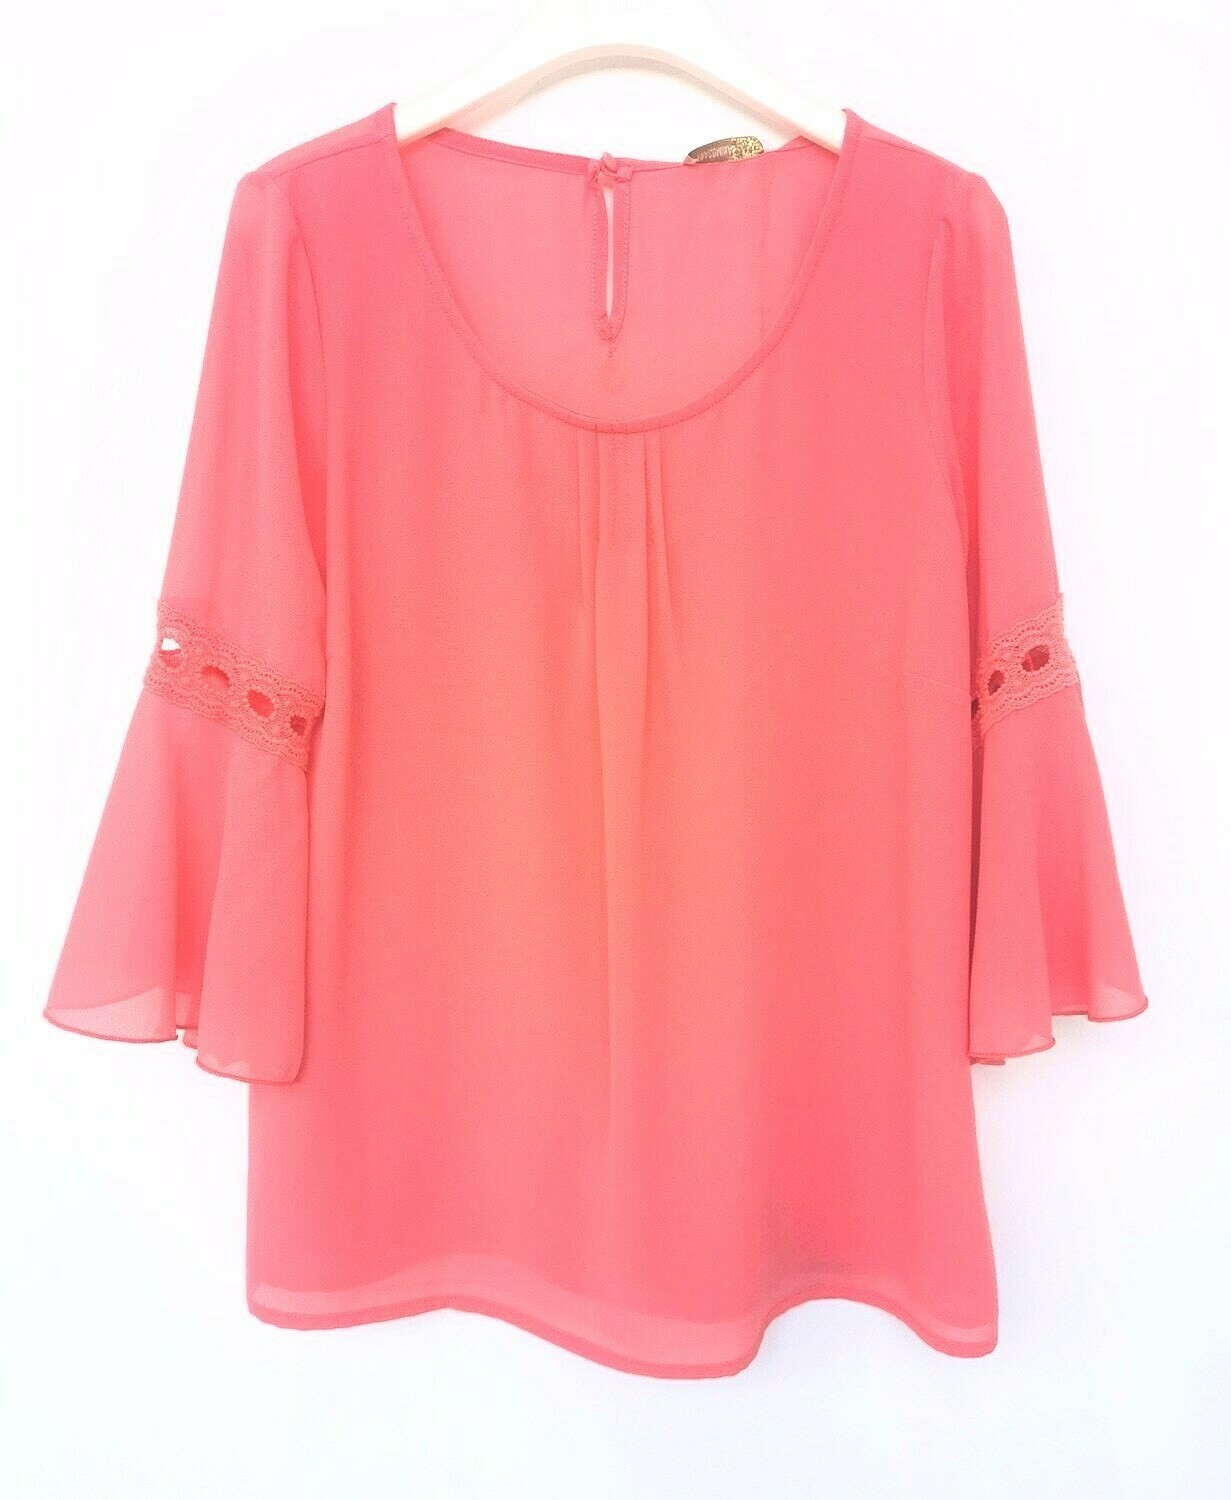 Crepe blouse with 3/4 sleeve